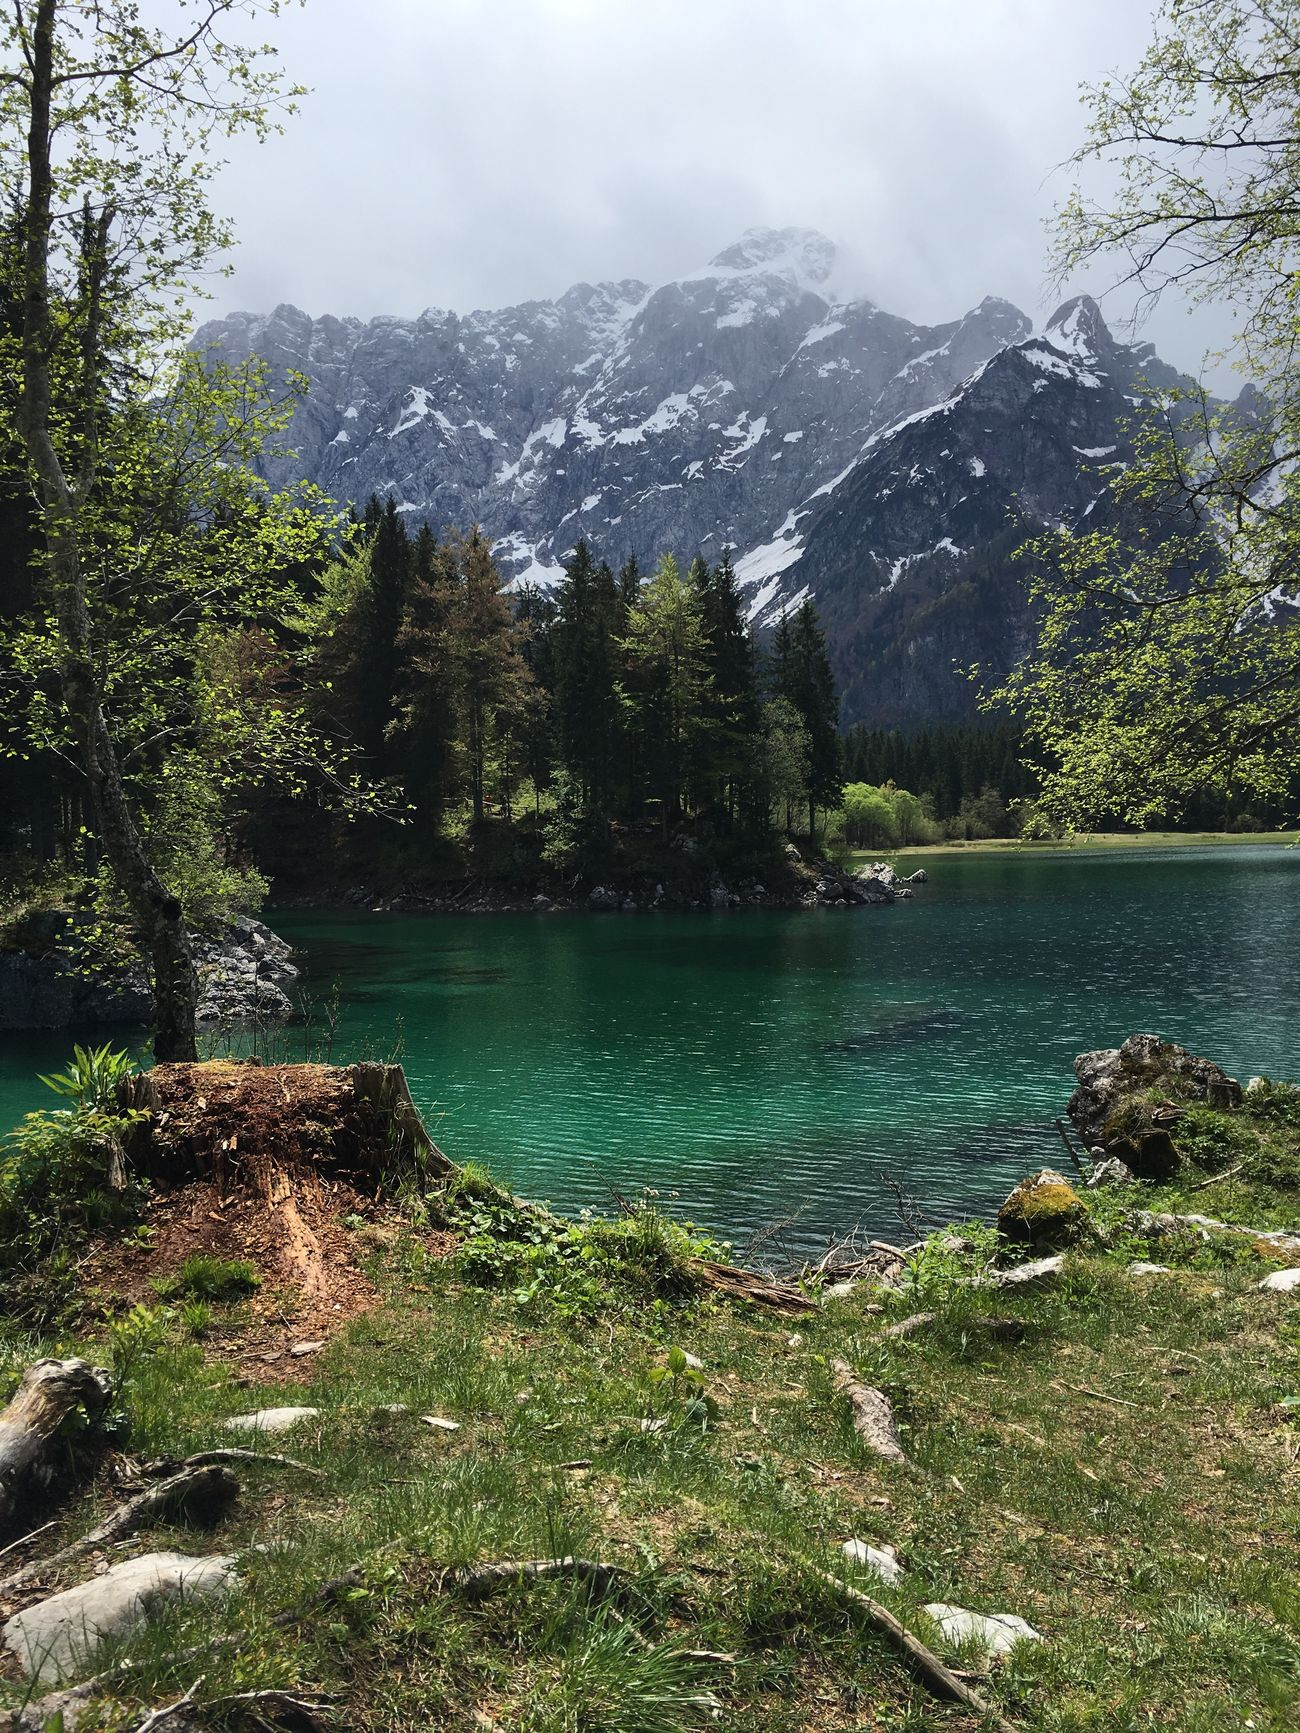 Check This Out The Week Of Eyeem Nofilter Nofilter#noedit EyeEm Beautiful Day Naturelovers Trees Mountains The Great Outdoors - 2016 EyeEm Awards Julian Alps EyeEm Nature Lover EyeEm Best Shots - Nature EyeEmBestPics Eyem Nature Lovers  Nature Nature_collection Italy